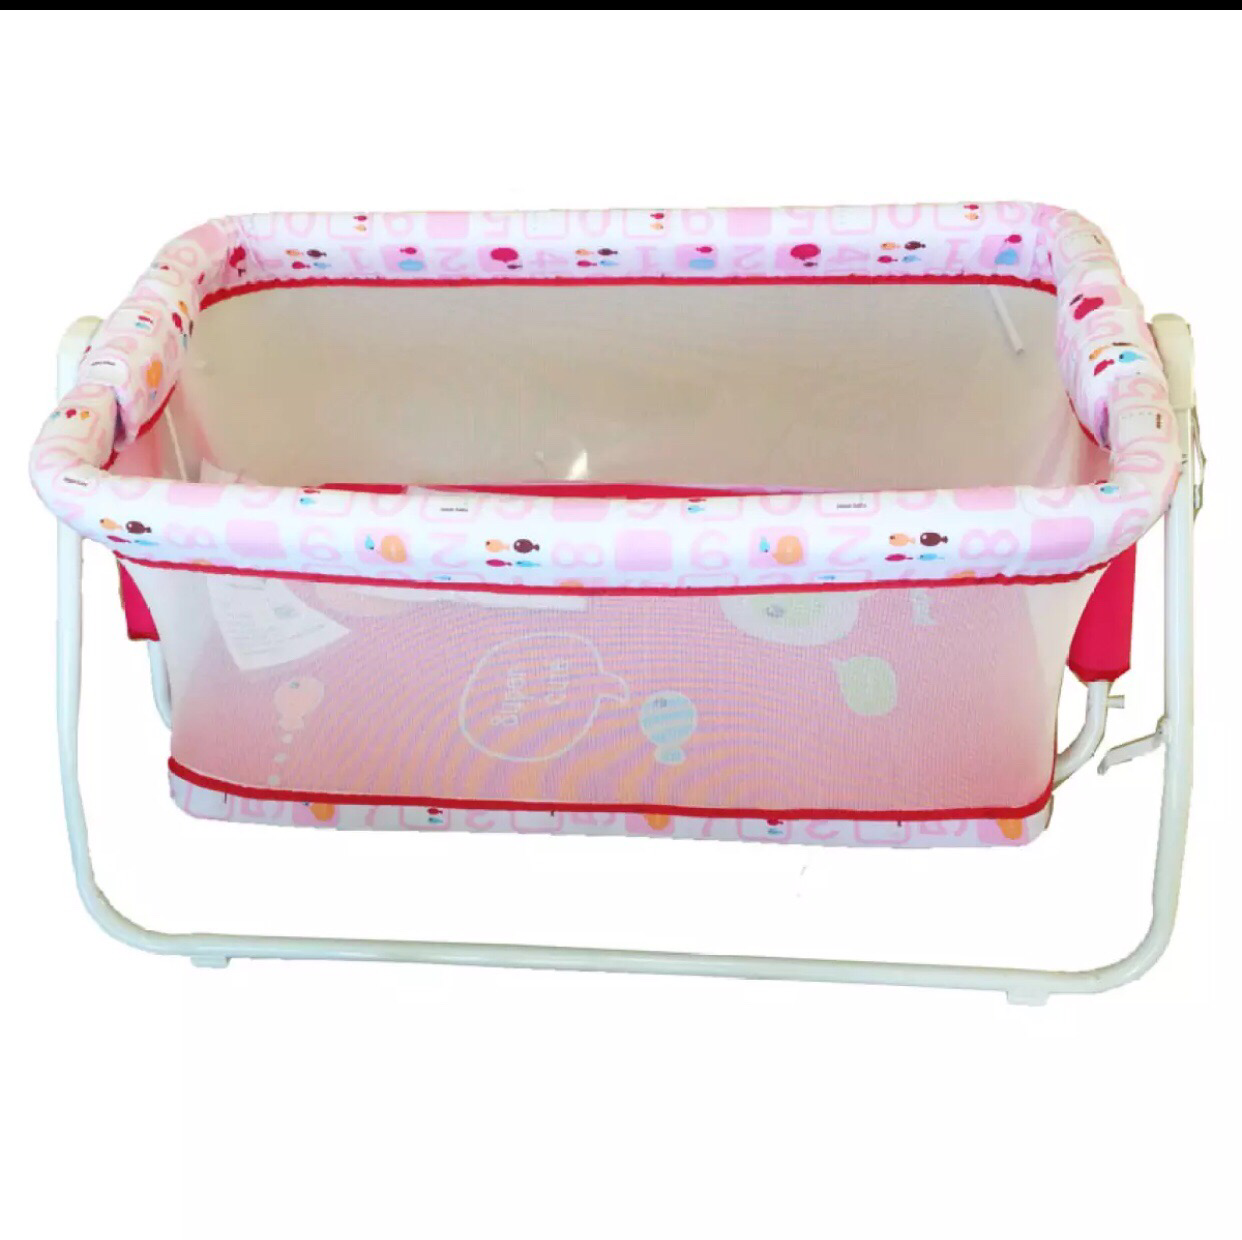 Cradle with the Bouncy Seat